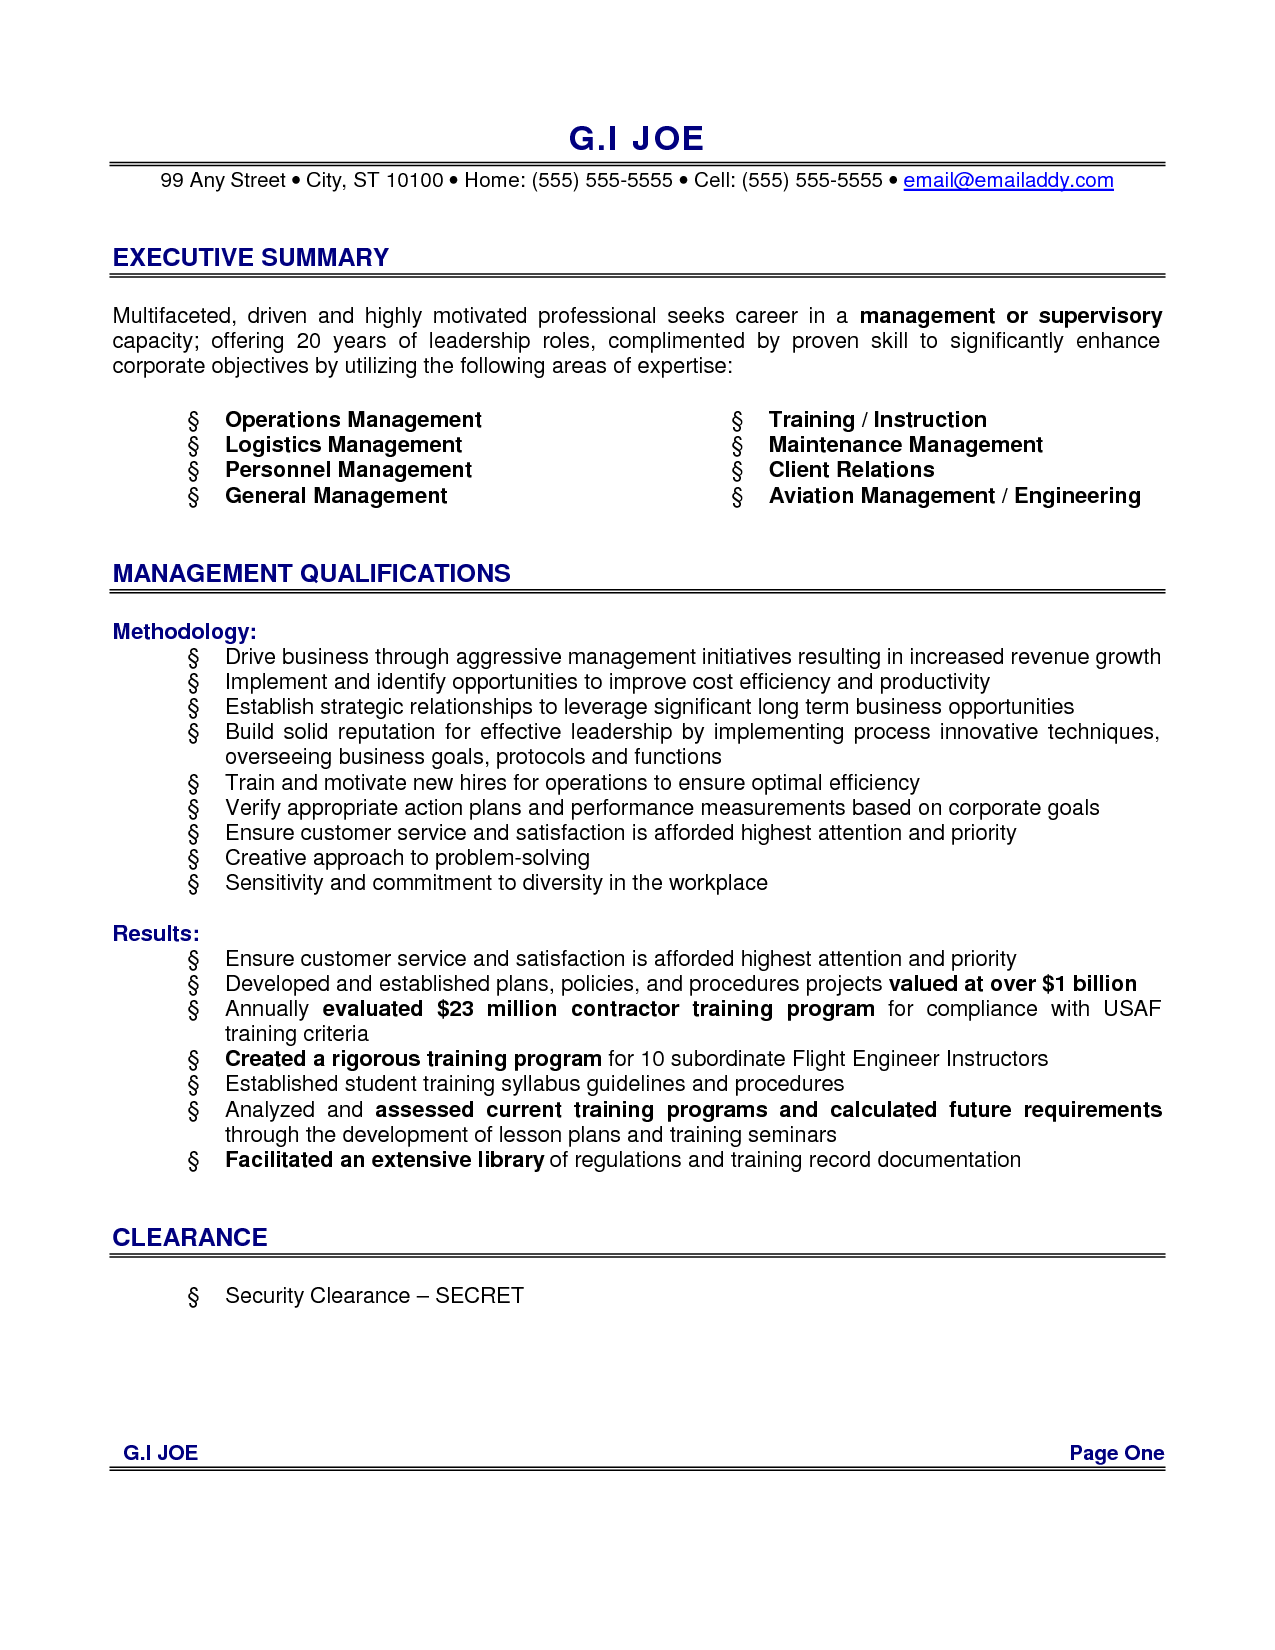 Resume executive summary example